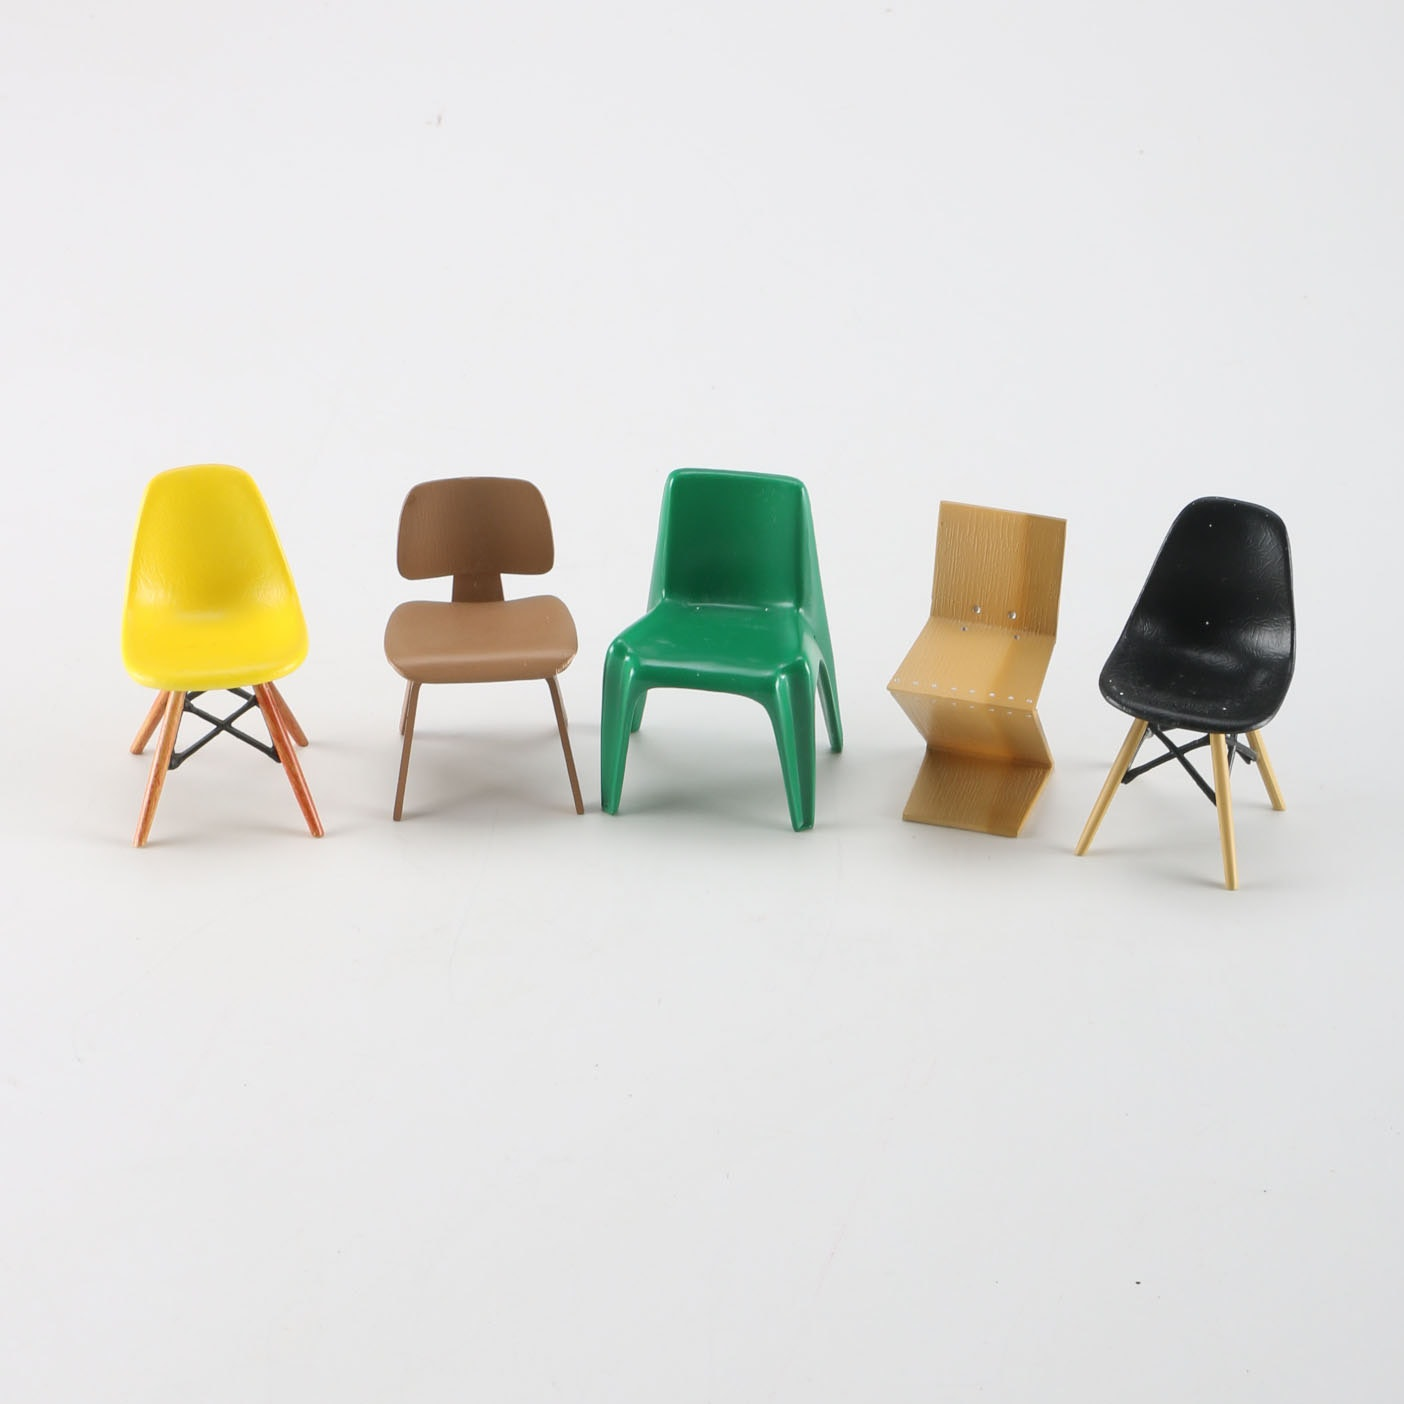 Vitra Miniature Herman Miller Style Chairs ...